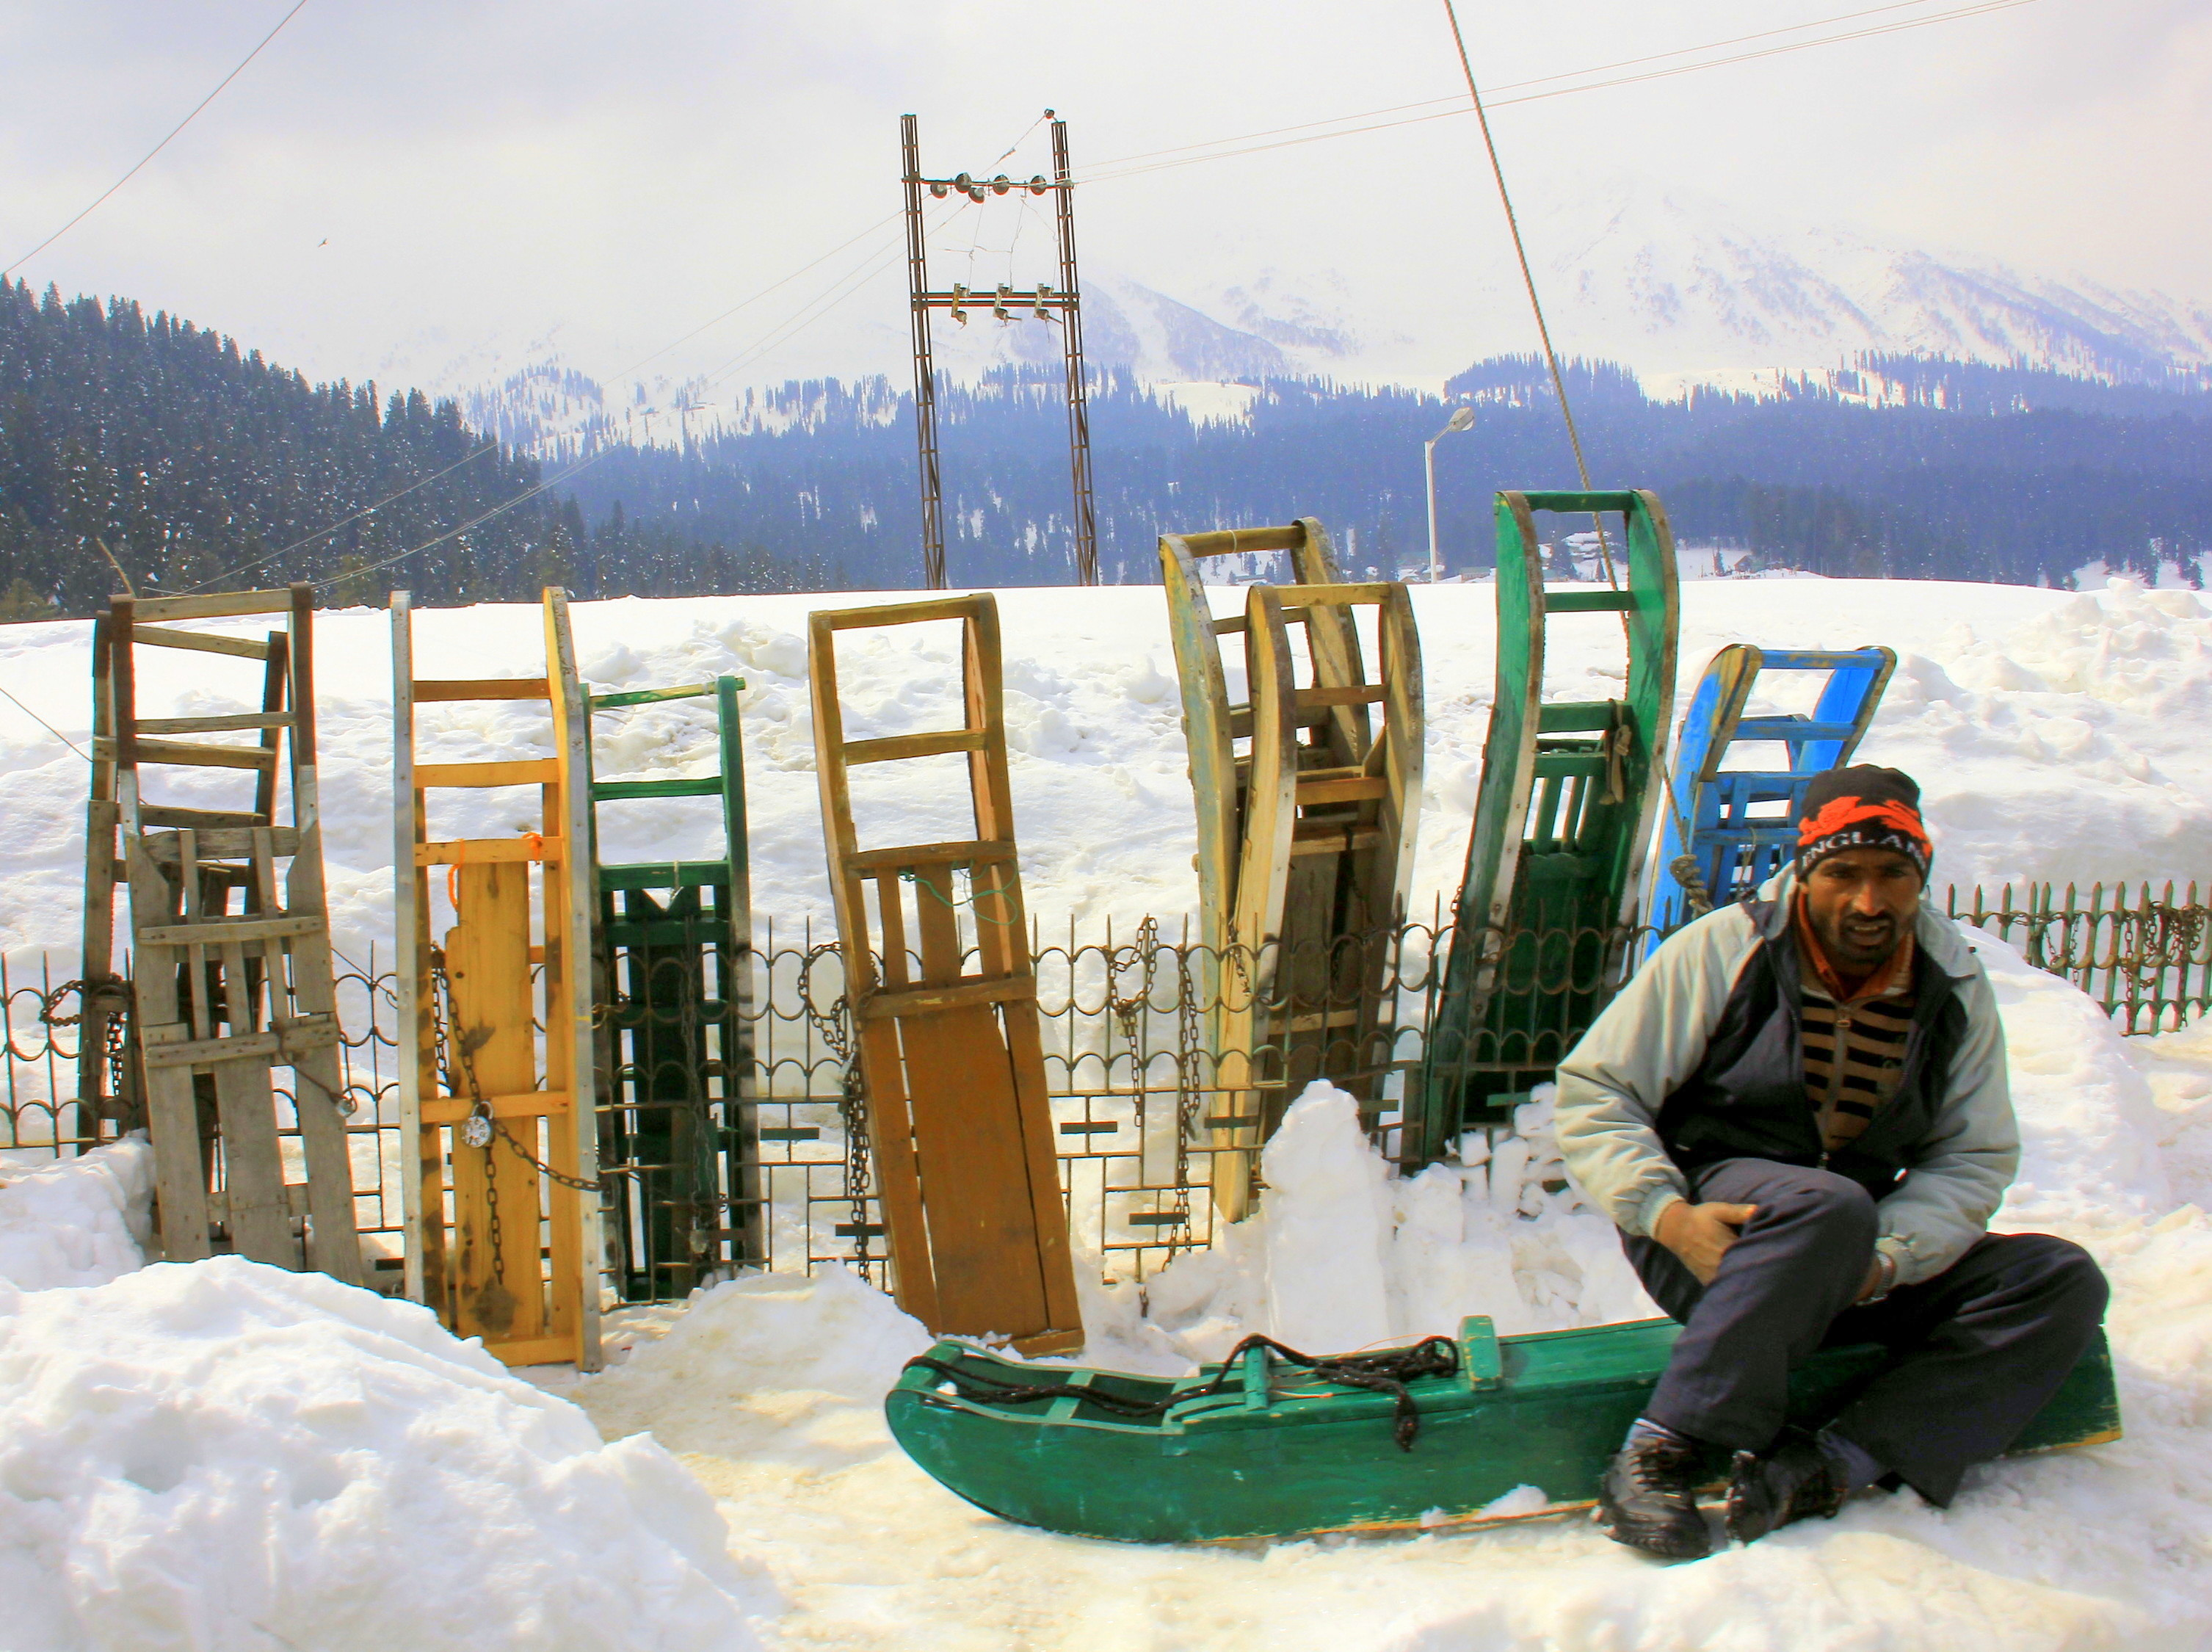 Kashmir in winter is great for skiing